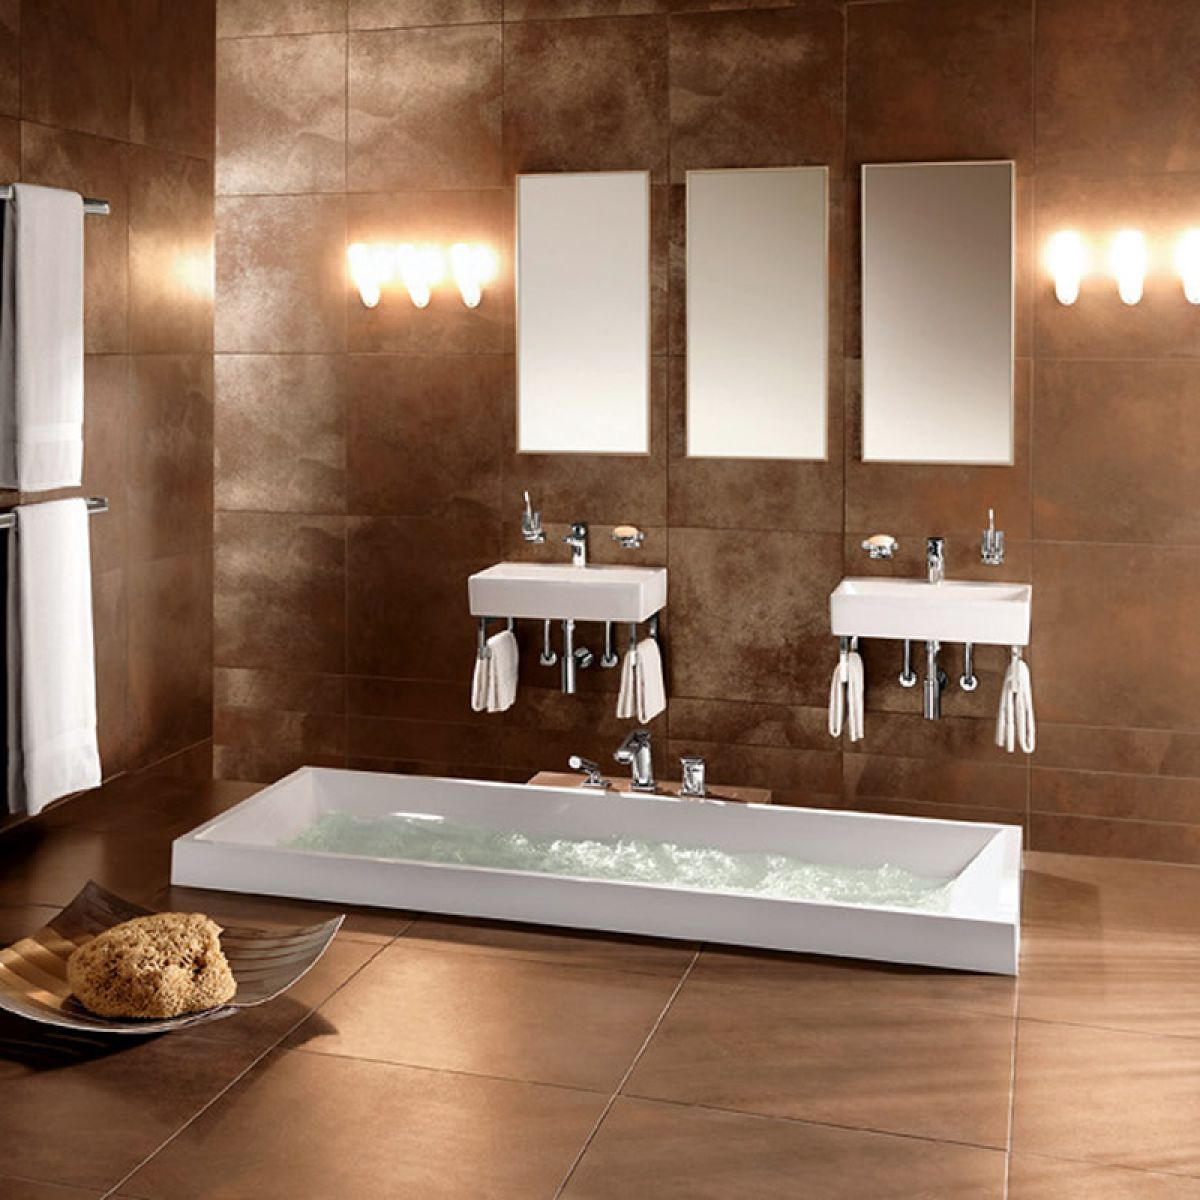 villeroy boch fire ice tile 2409 15 - Villeroy And Boch Baths